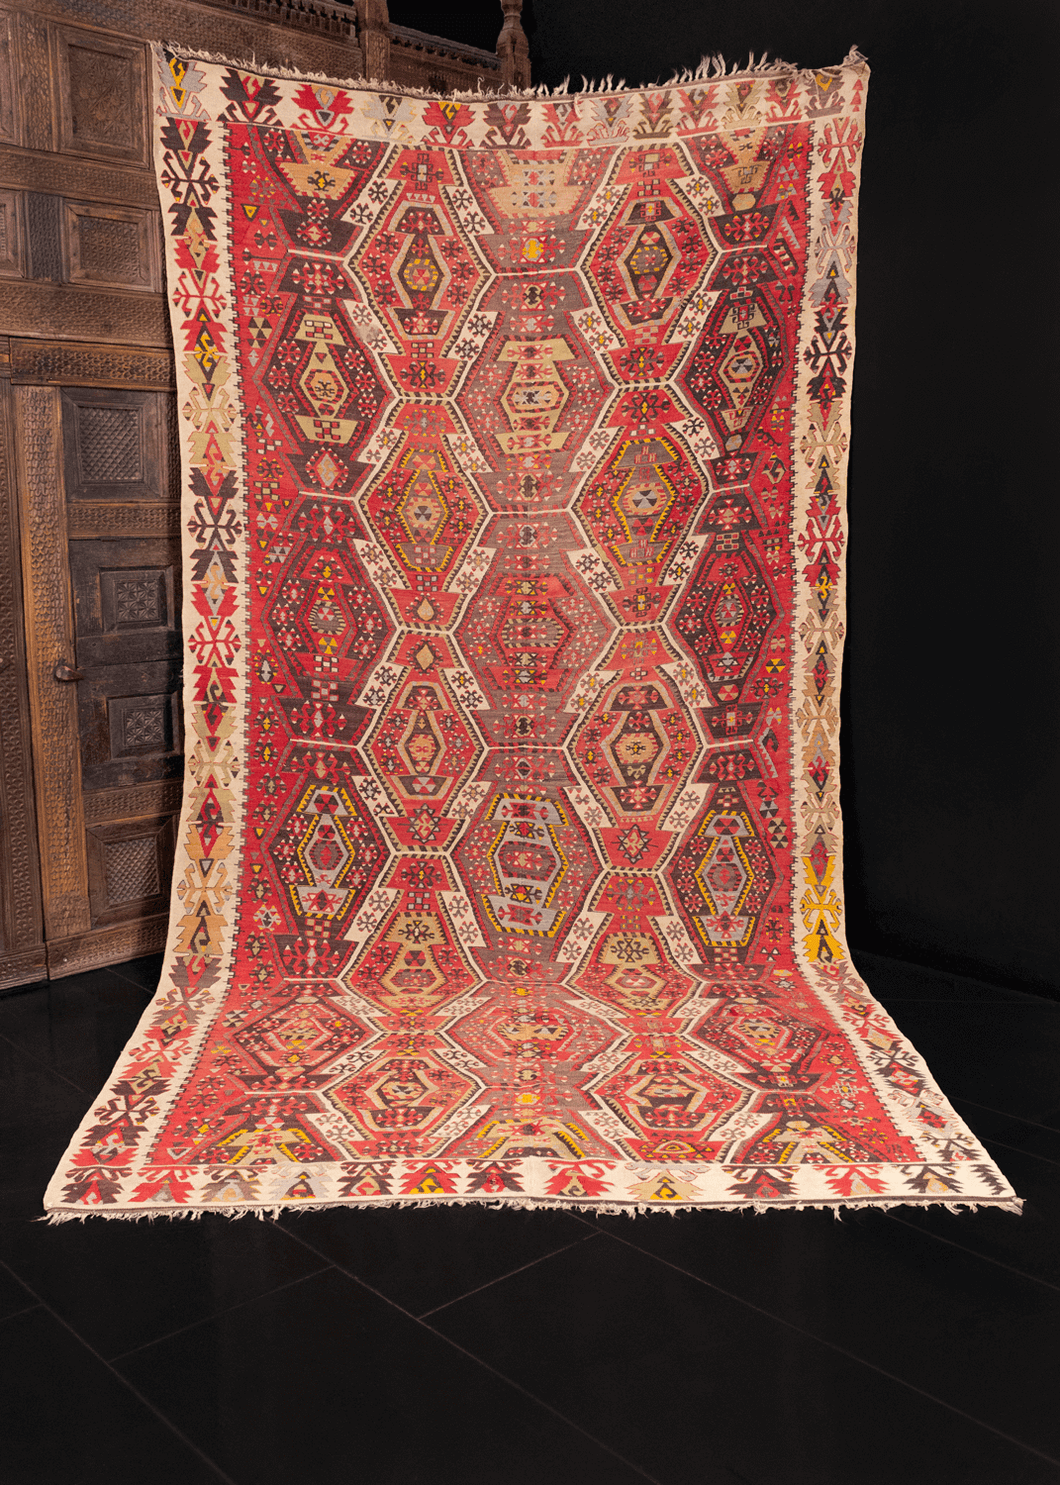 Reyhanli kilim handwoven in Southeast Turkey during second quarter of 20th century. Constructed in two parts and joined in the middle. Abstract geometric pattern in red, brown, blue and yellow.